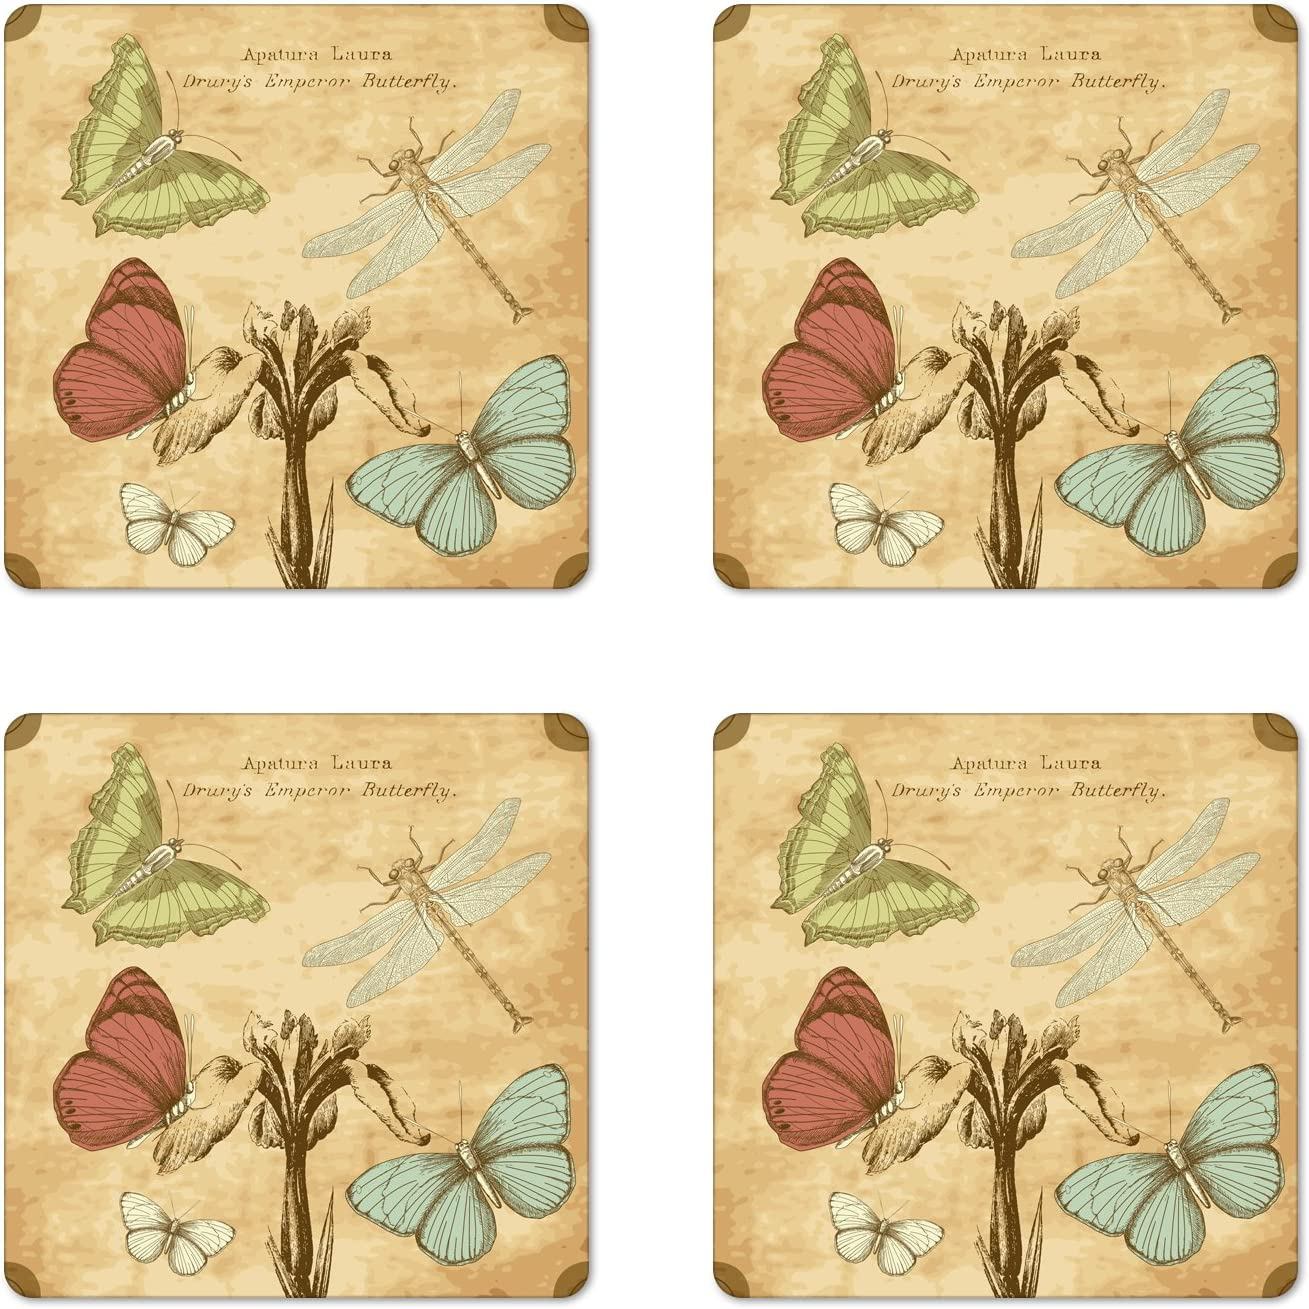 Amazon Com Ambesonne Dragonfly Coaster Set Of 4 Retro Style Butterflies With Flower Petals And Grunge Effects Artwork Square Hardboard Gloss Coasters For Drinks Sand Brown Caramel Coasters